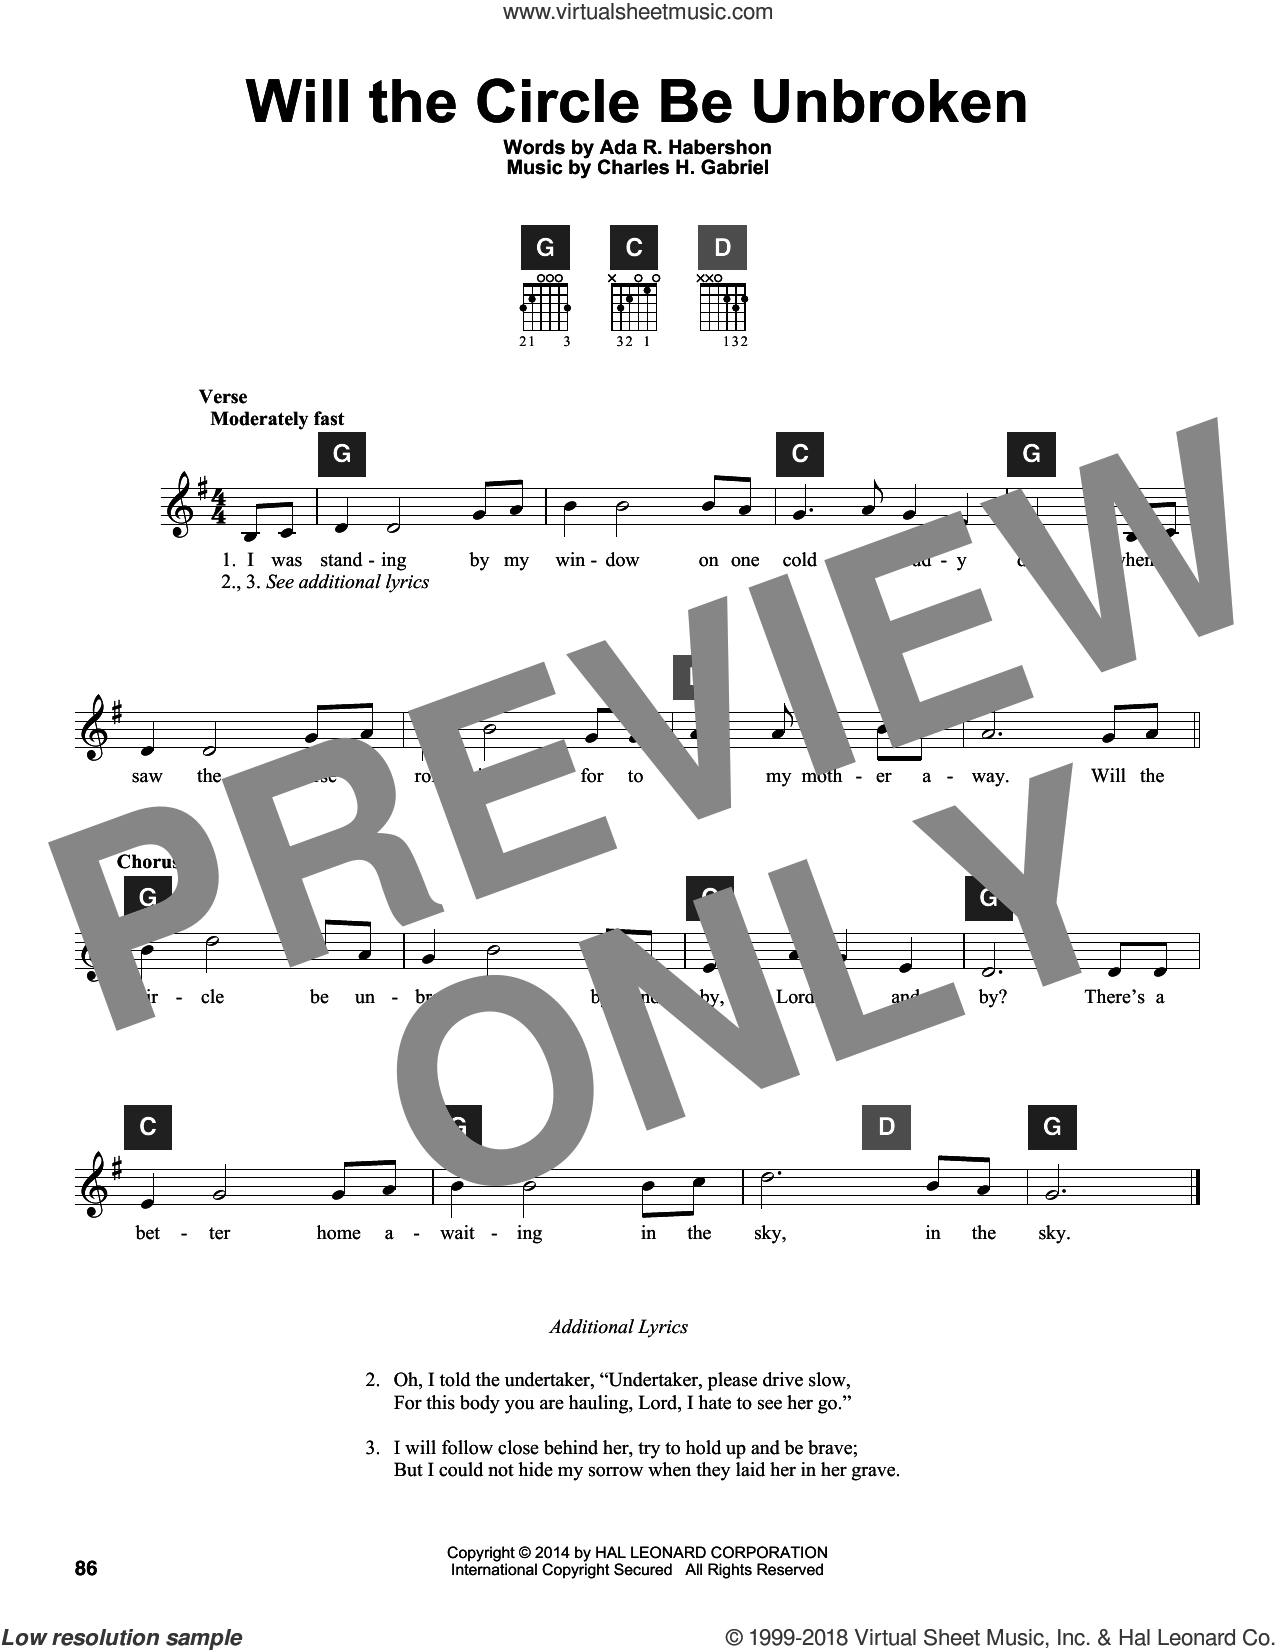 Will The Circle Be Unbroken sheet music for guitar solo (ChordBuddy system) by Charles H. Gabriel, Travis Perry and Ada R. Habershon, intermediate guitar (ChordBuddy system)